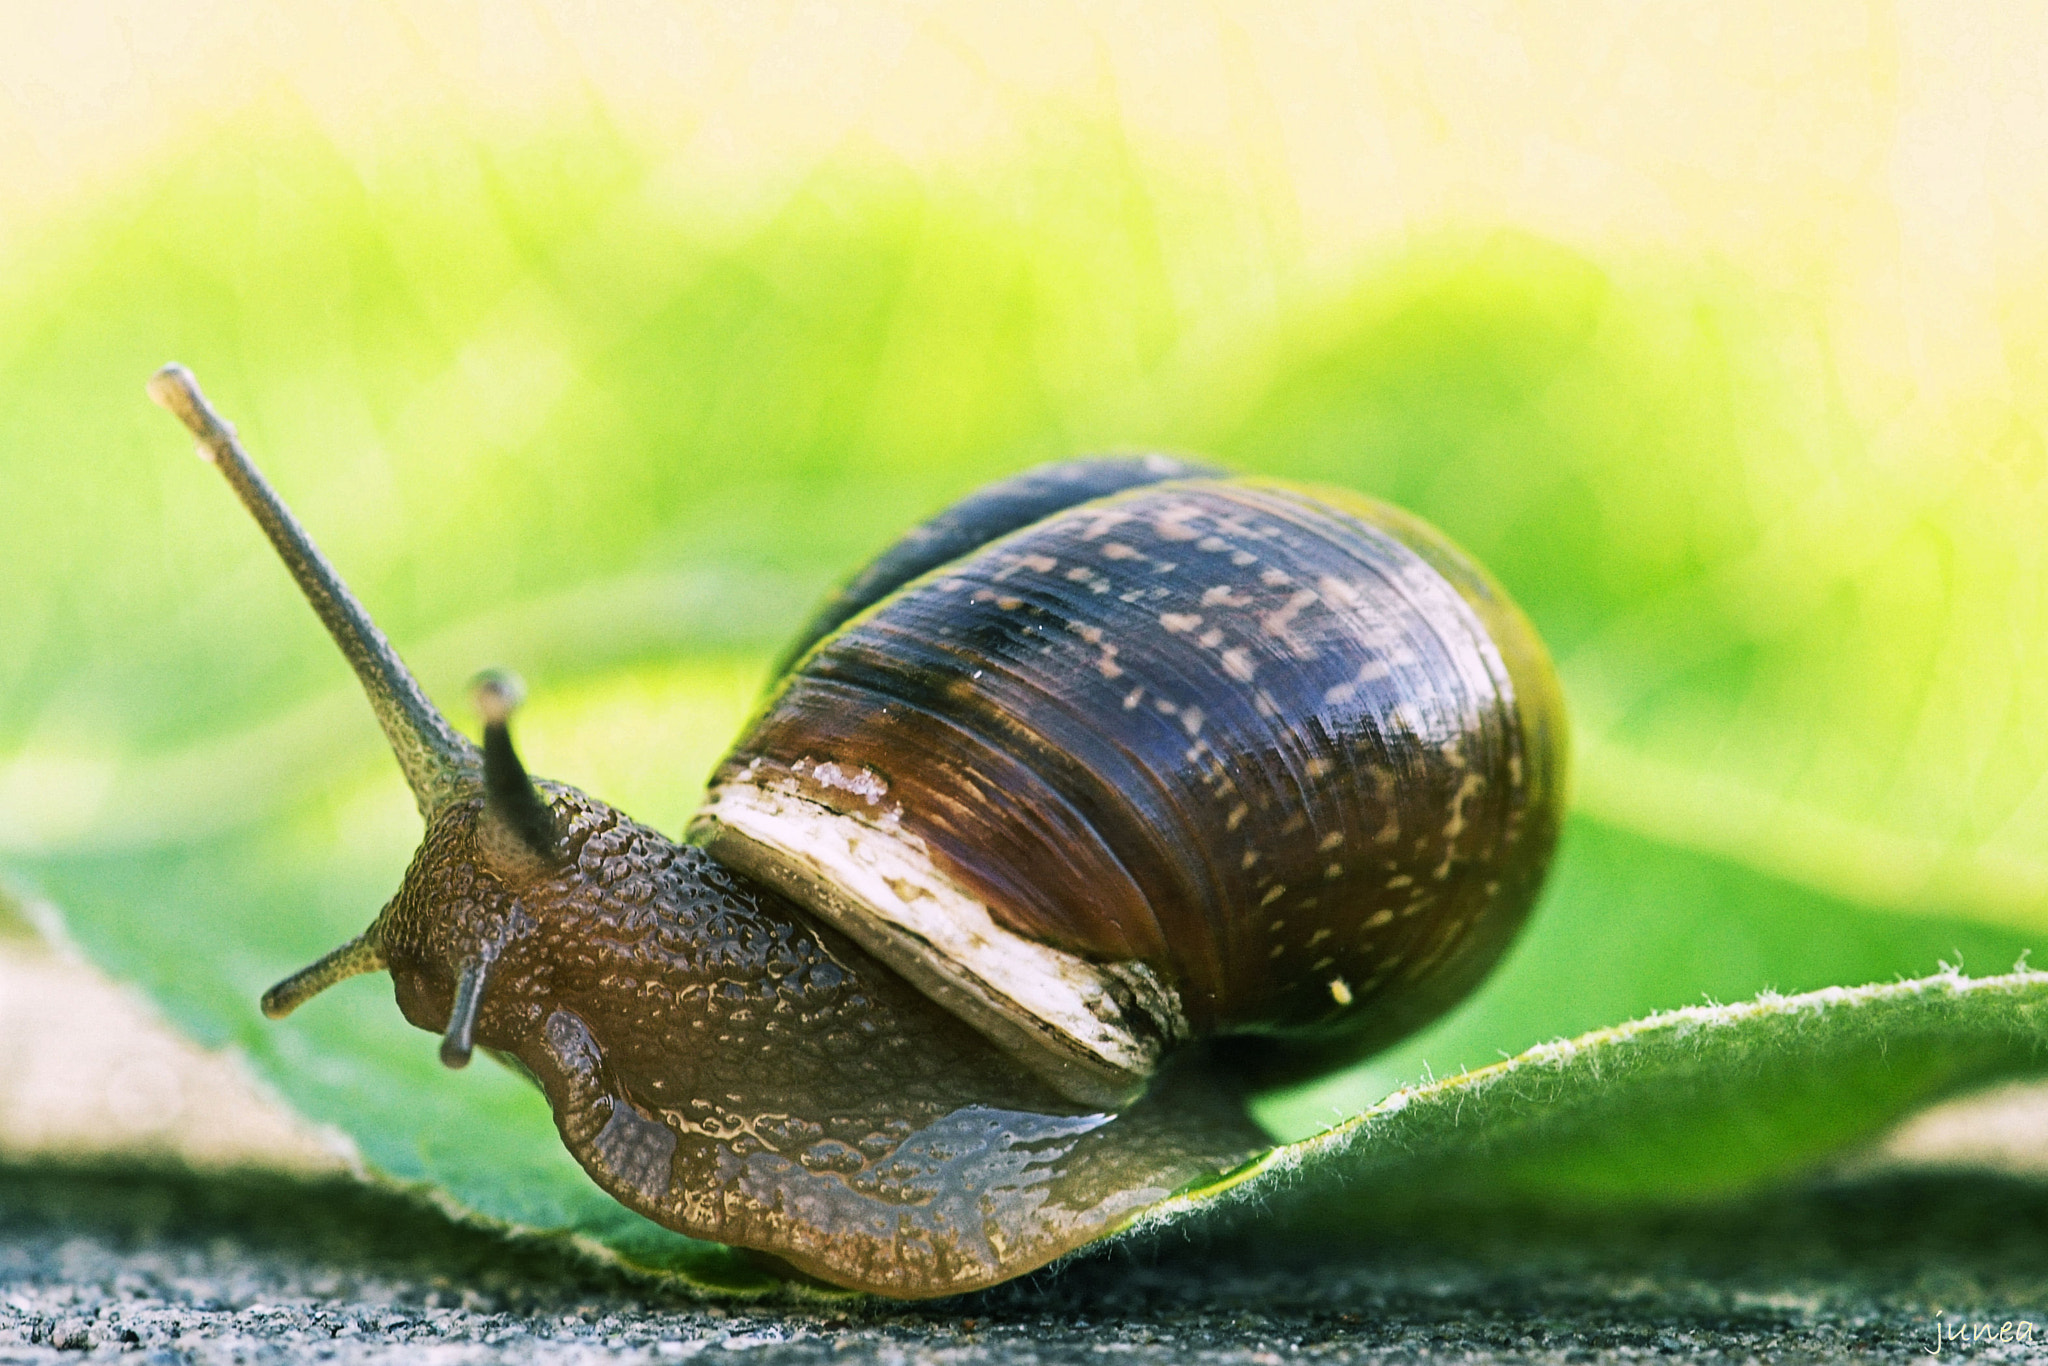 Photograph The Snail by June A on 500px